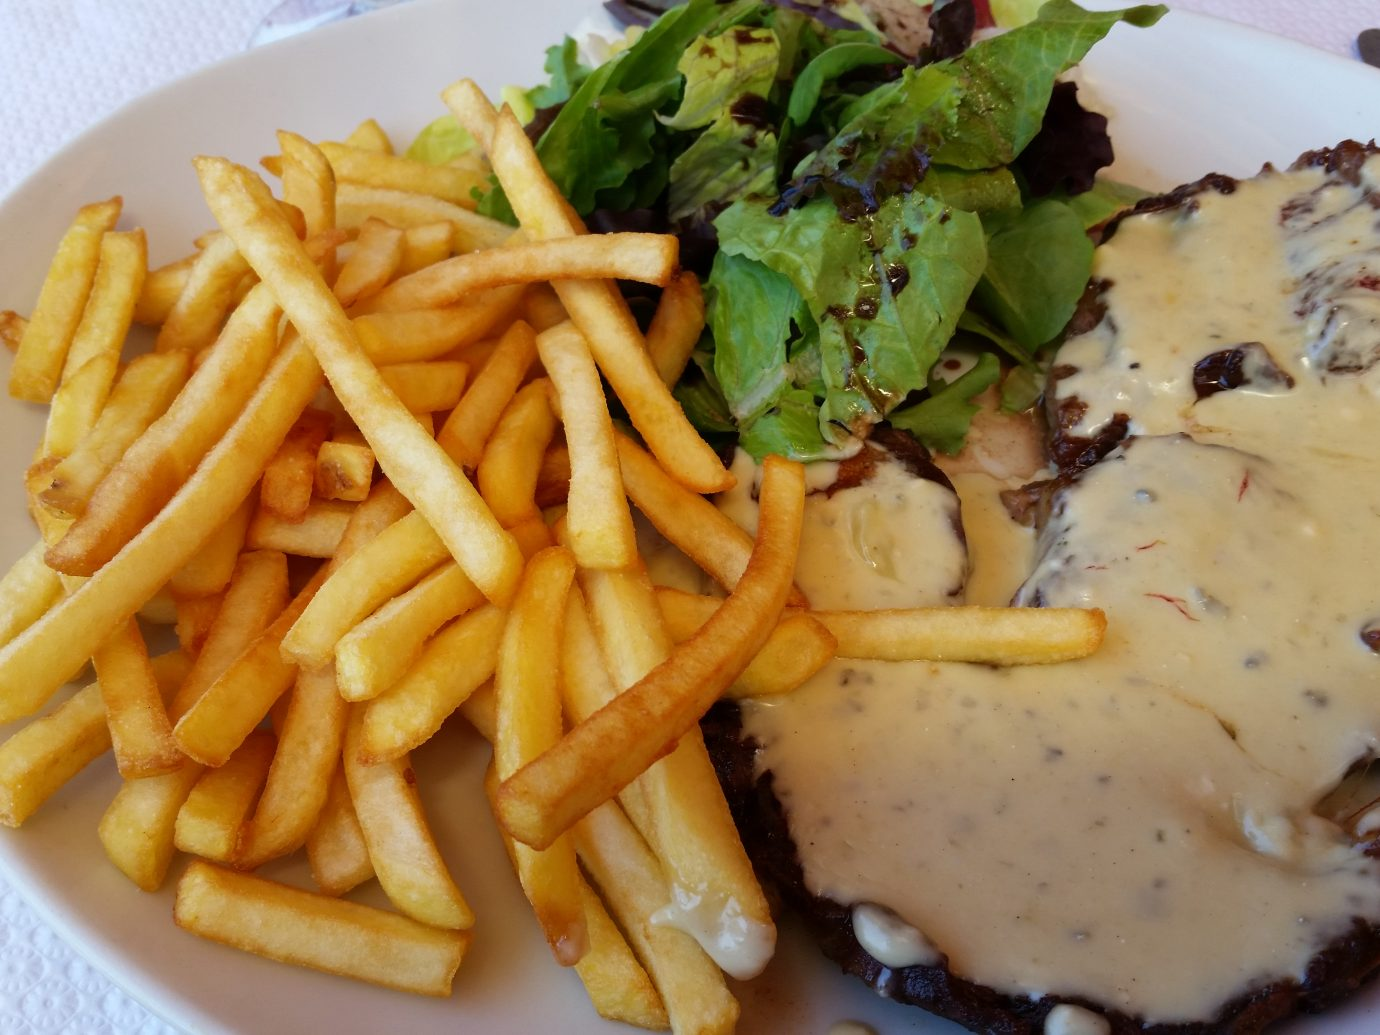 Steak Frites at Bistrot Paul Bert in Paris, France